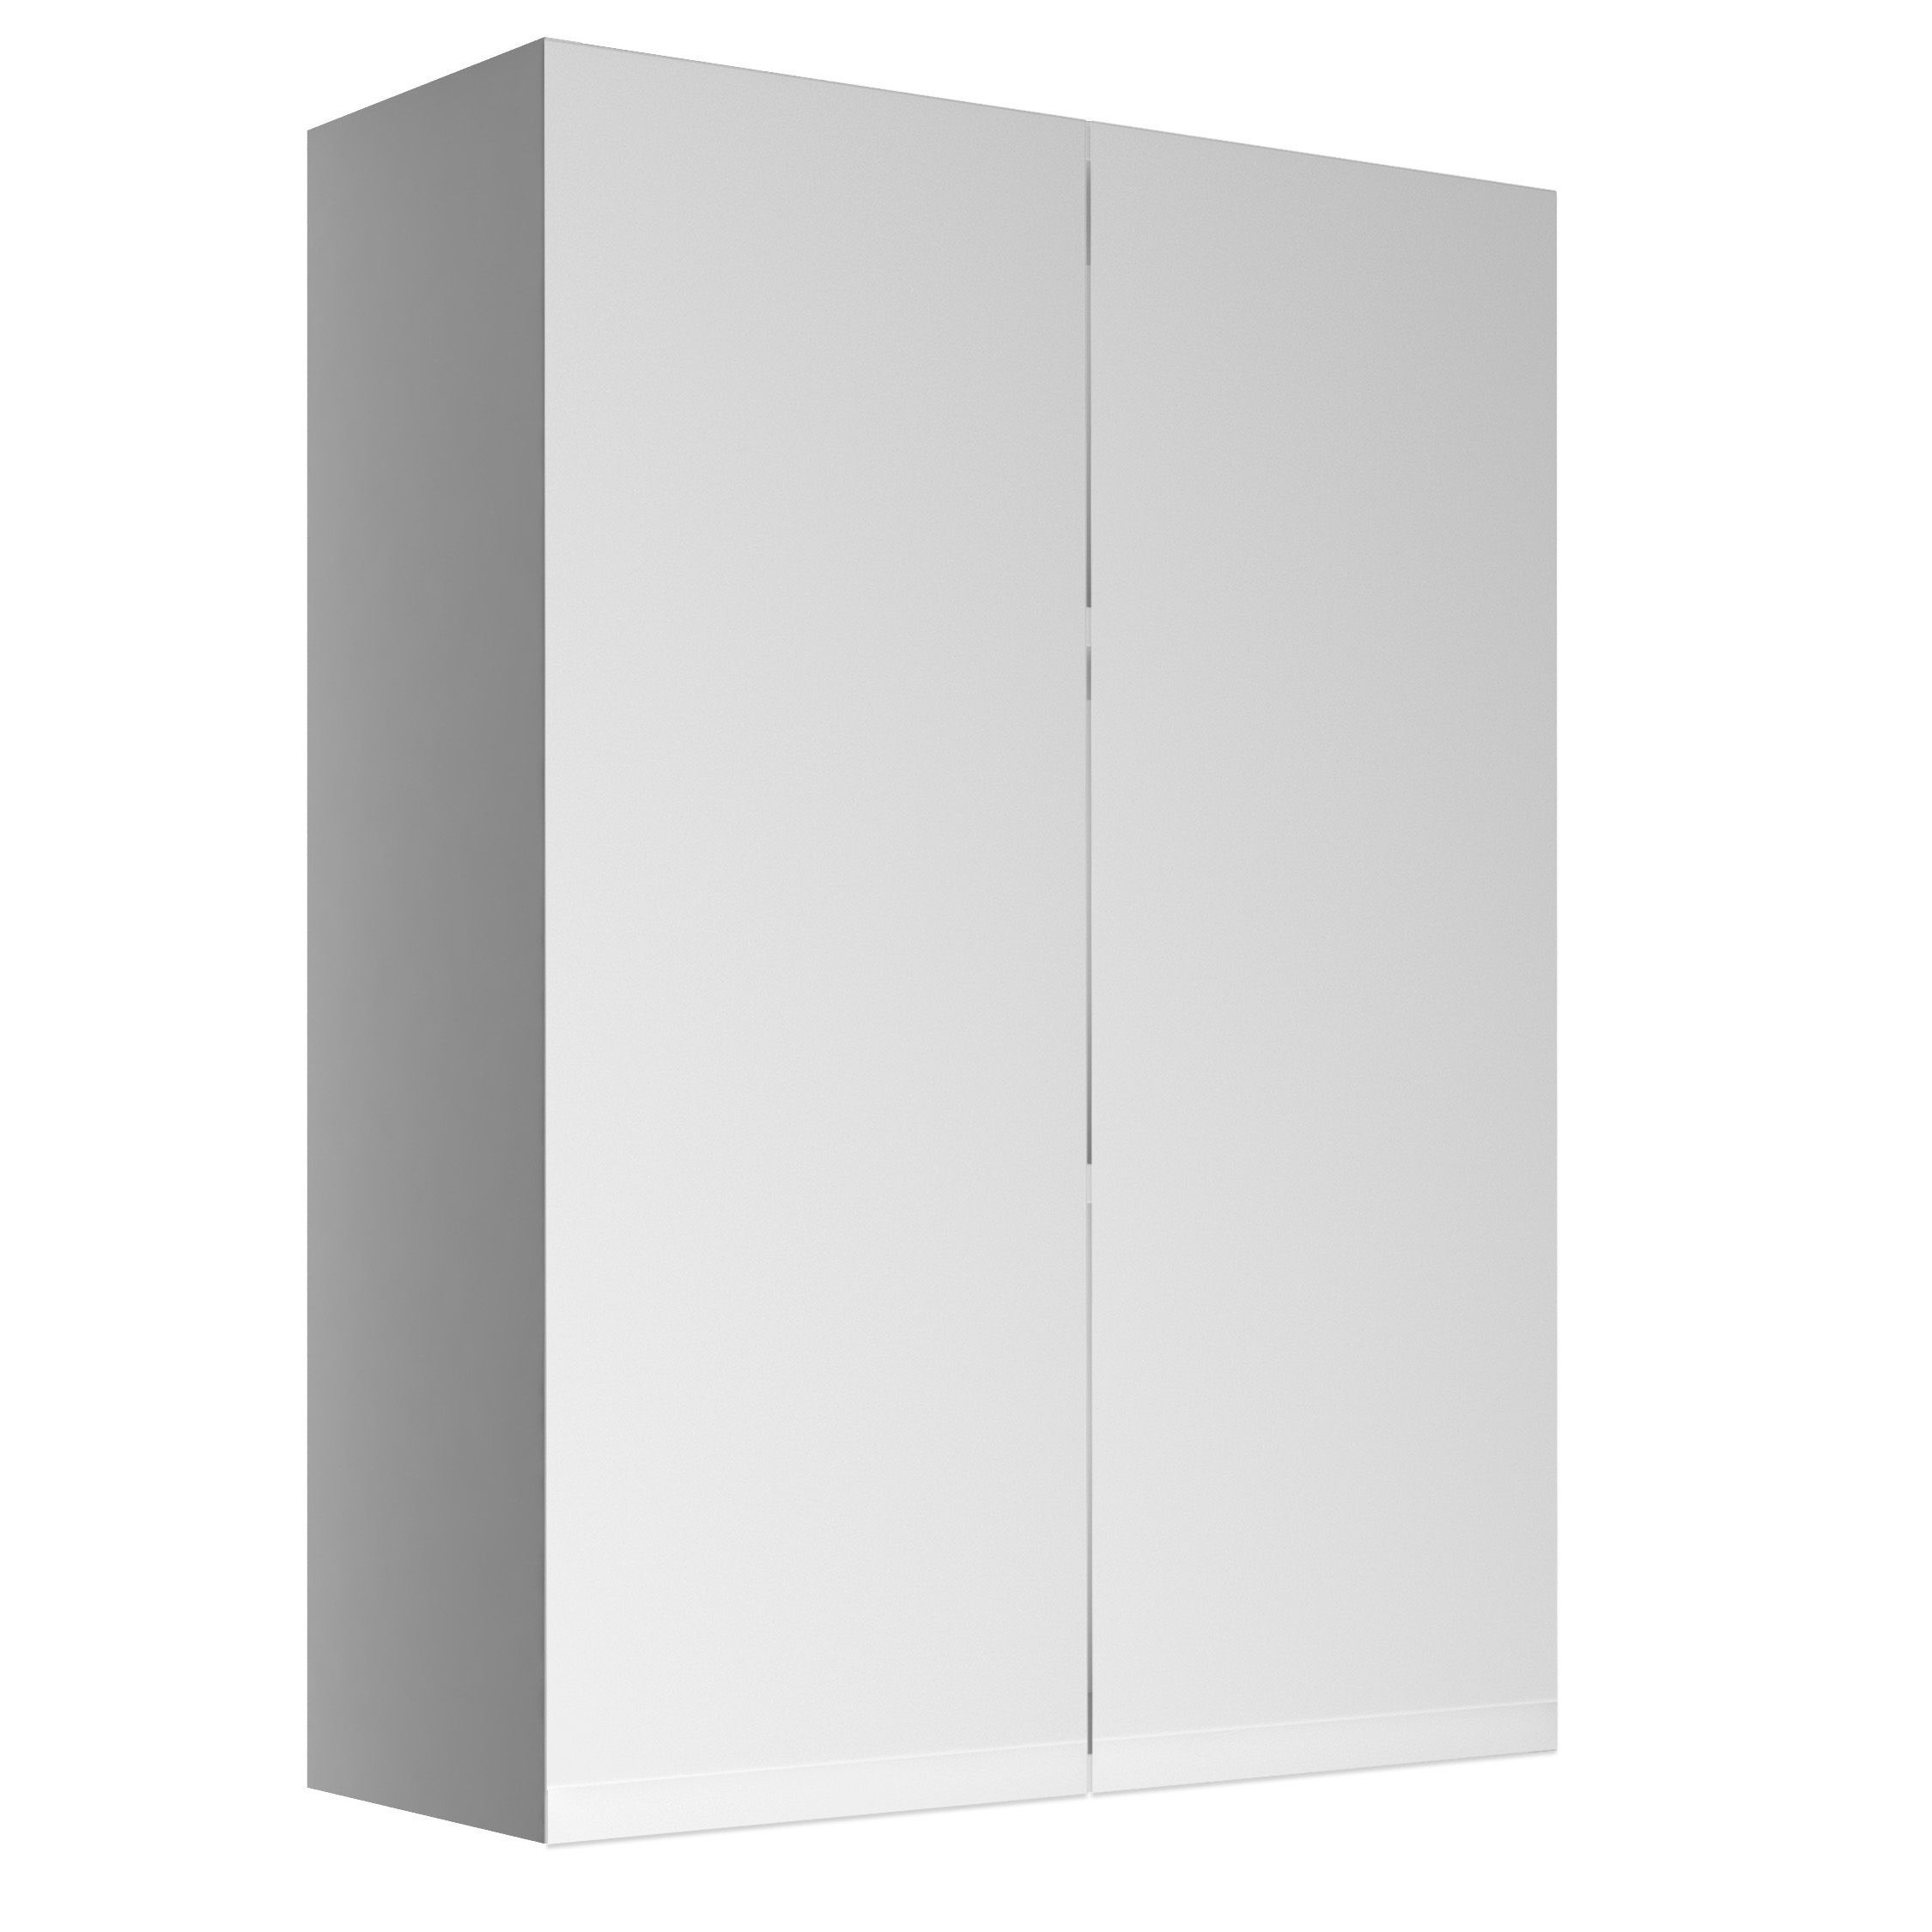 Cooke Lewis Marletti Gloss White Double Door Wall Cabinet W 600mm